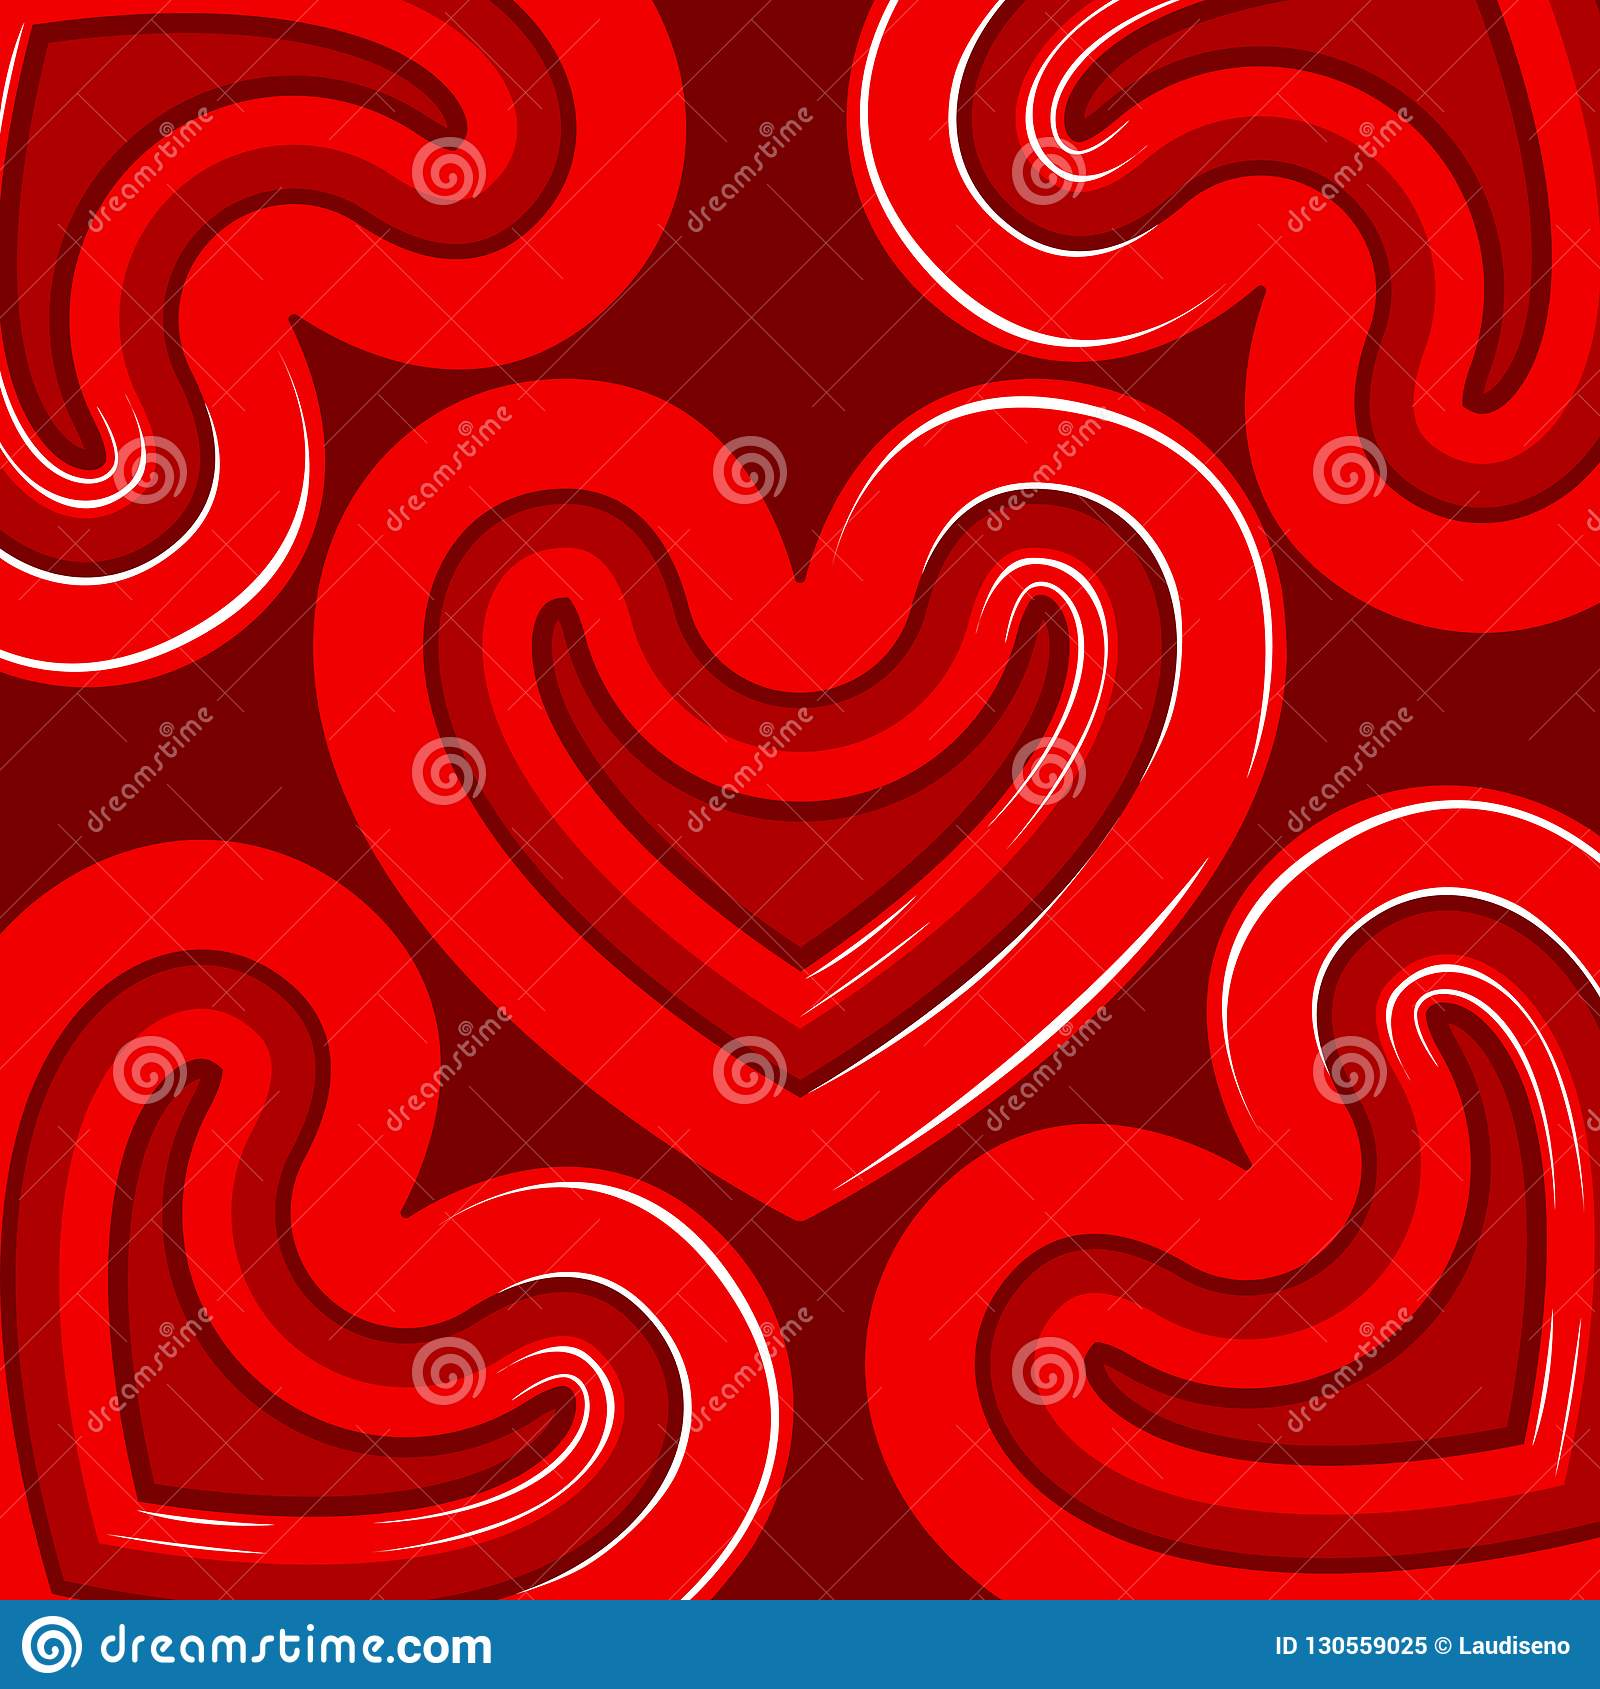 Group Of Heart Shapes Valentine Day Background Stock